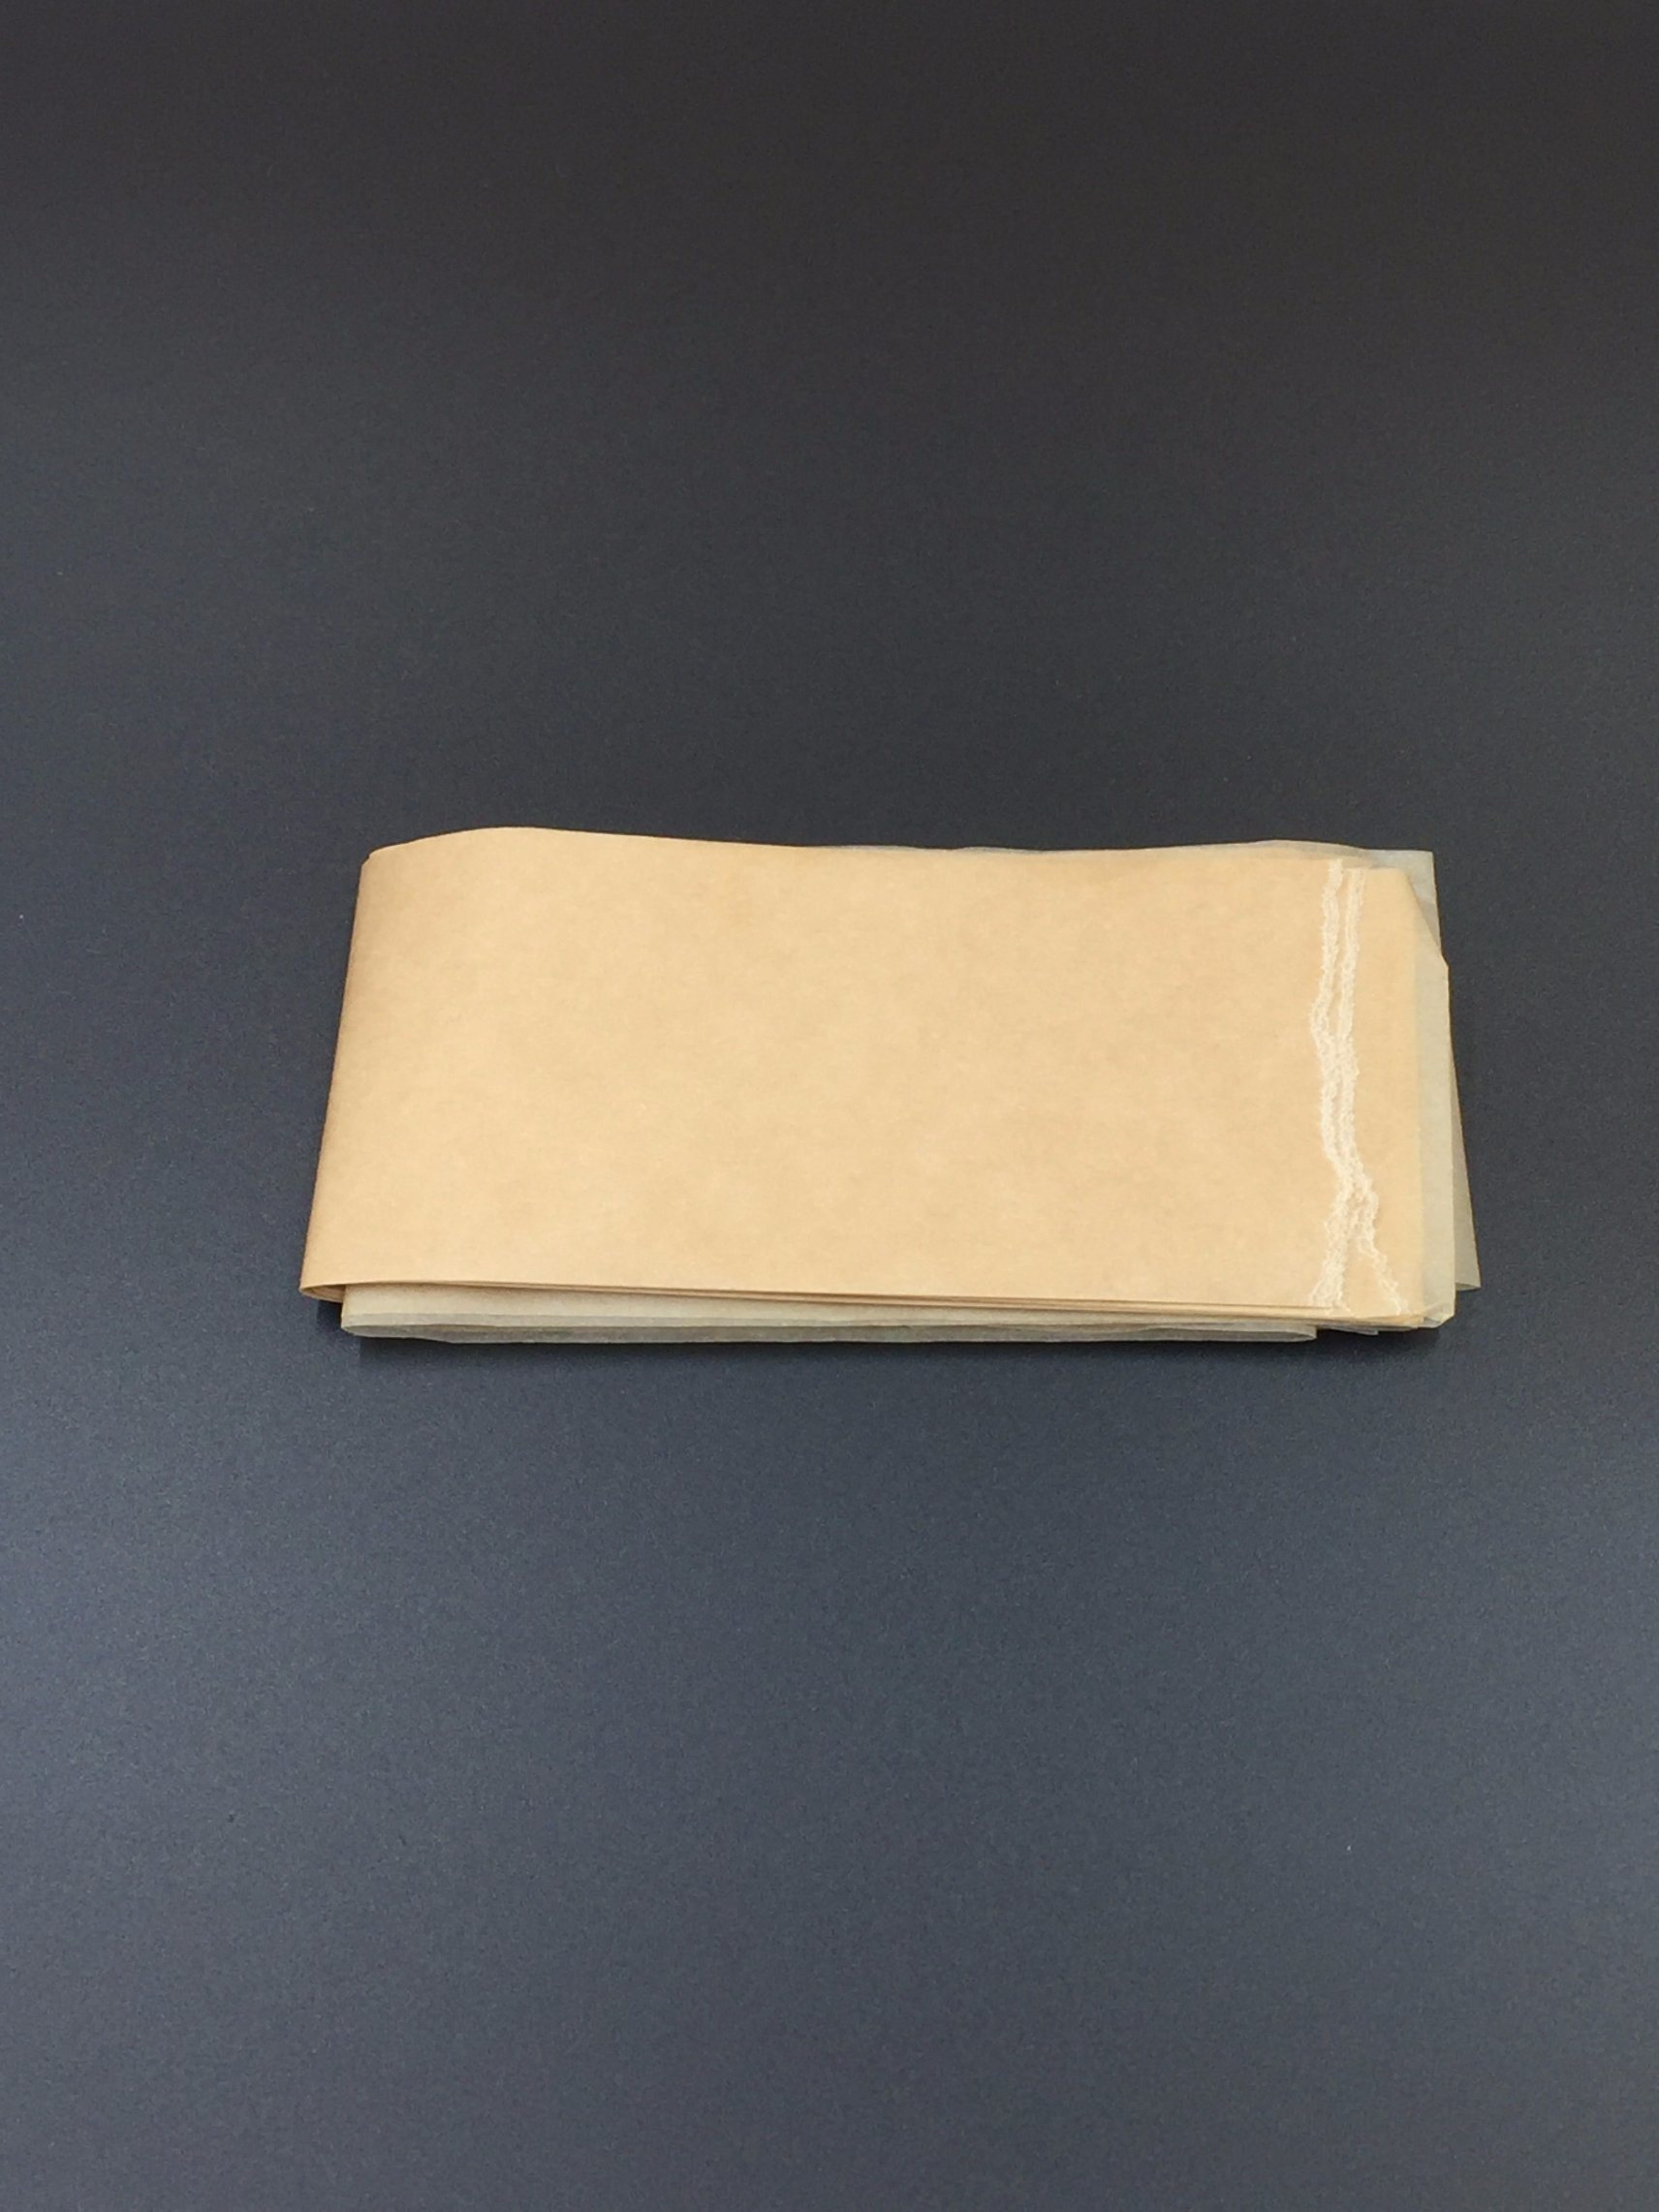 12.5GSM Brown Color Smoking Rolling Paper with 1 1/4 Size